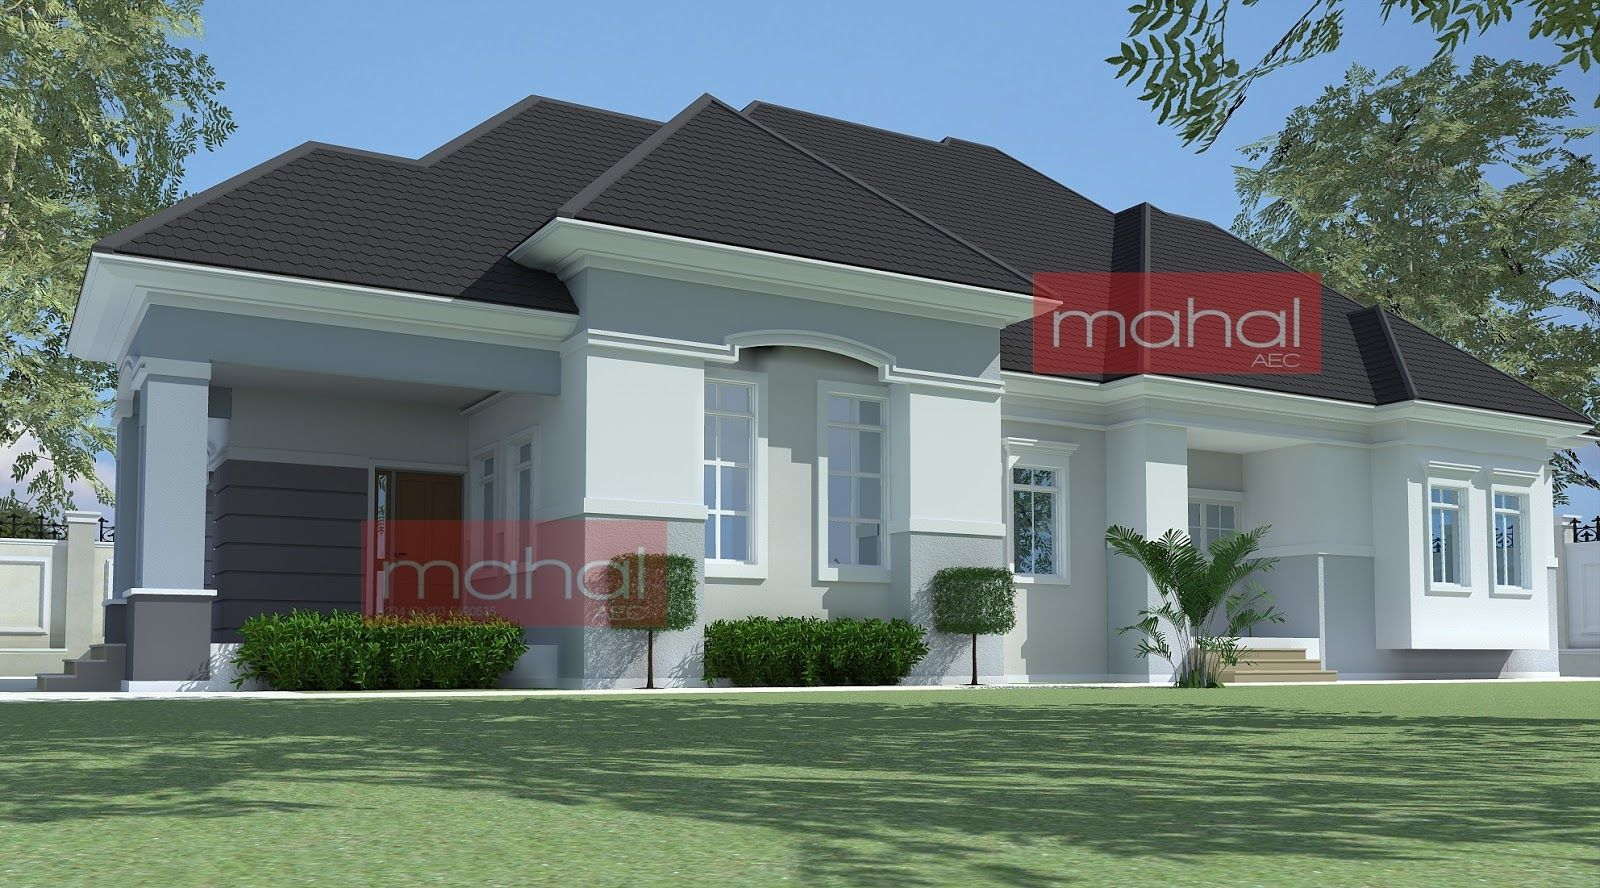 4 bedroom bungalow plan in nigeria 4 bedroom bungalow for Interior home designs in nigeria